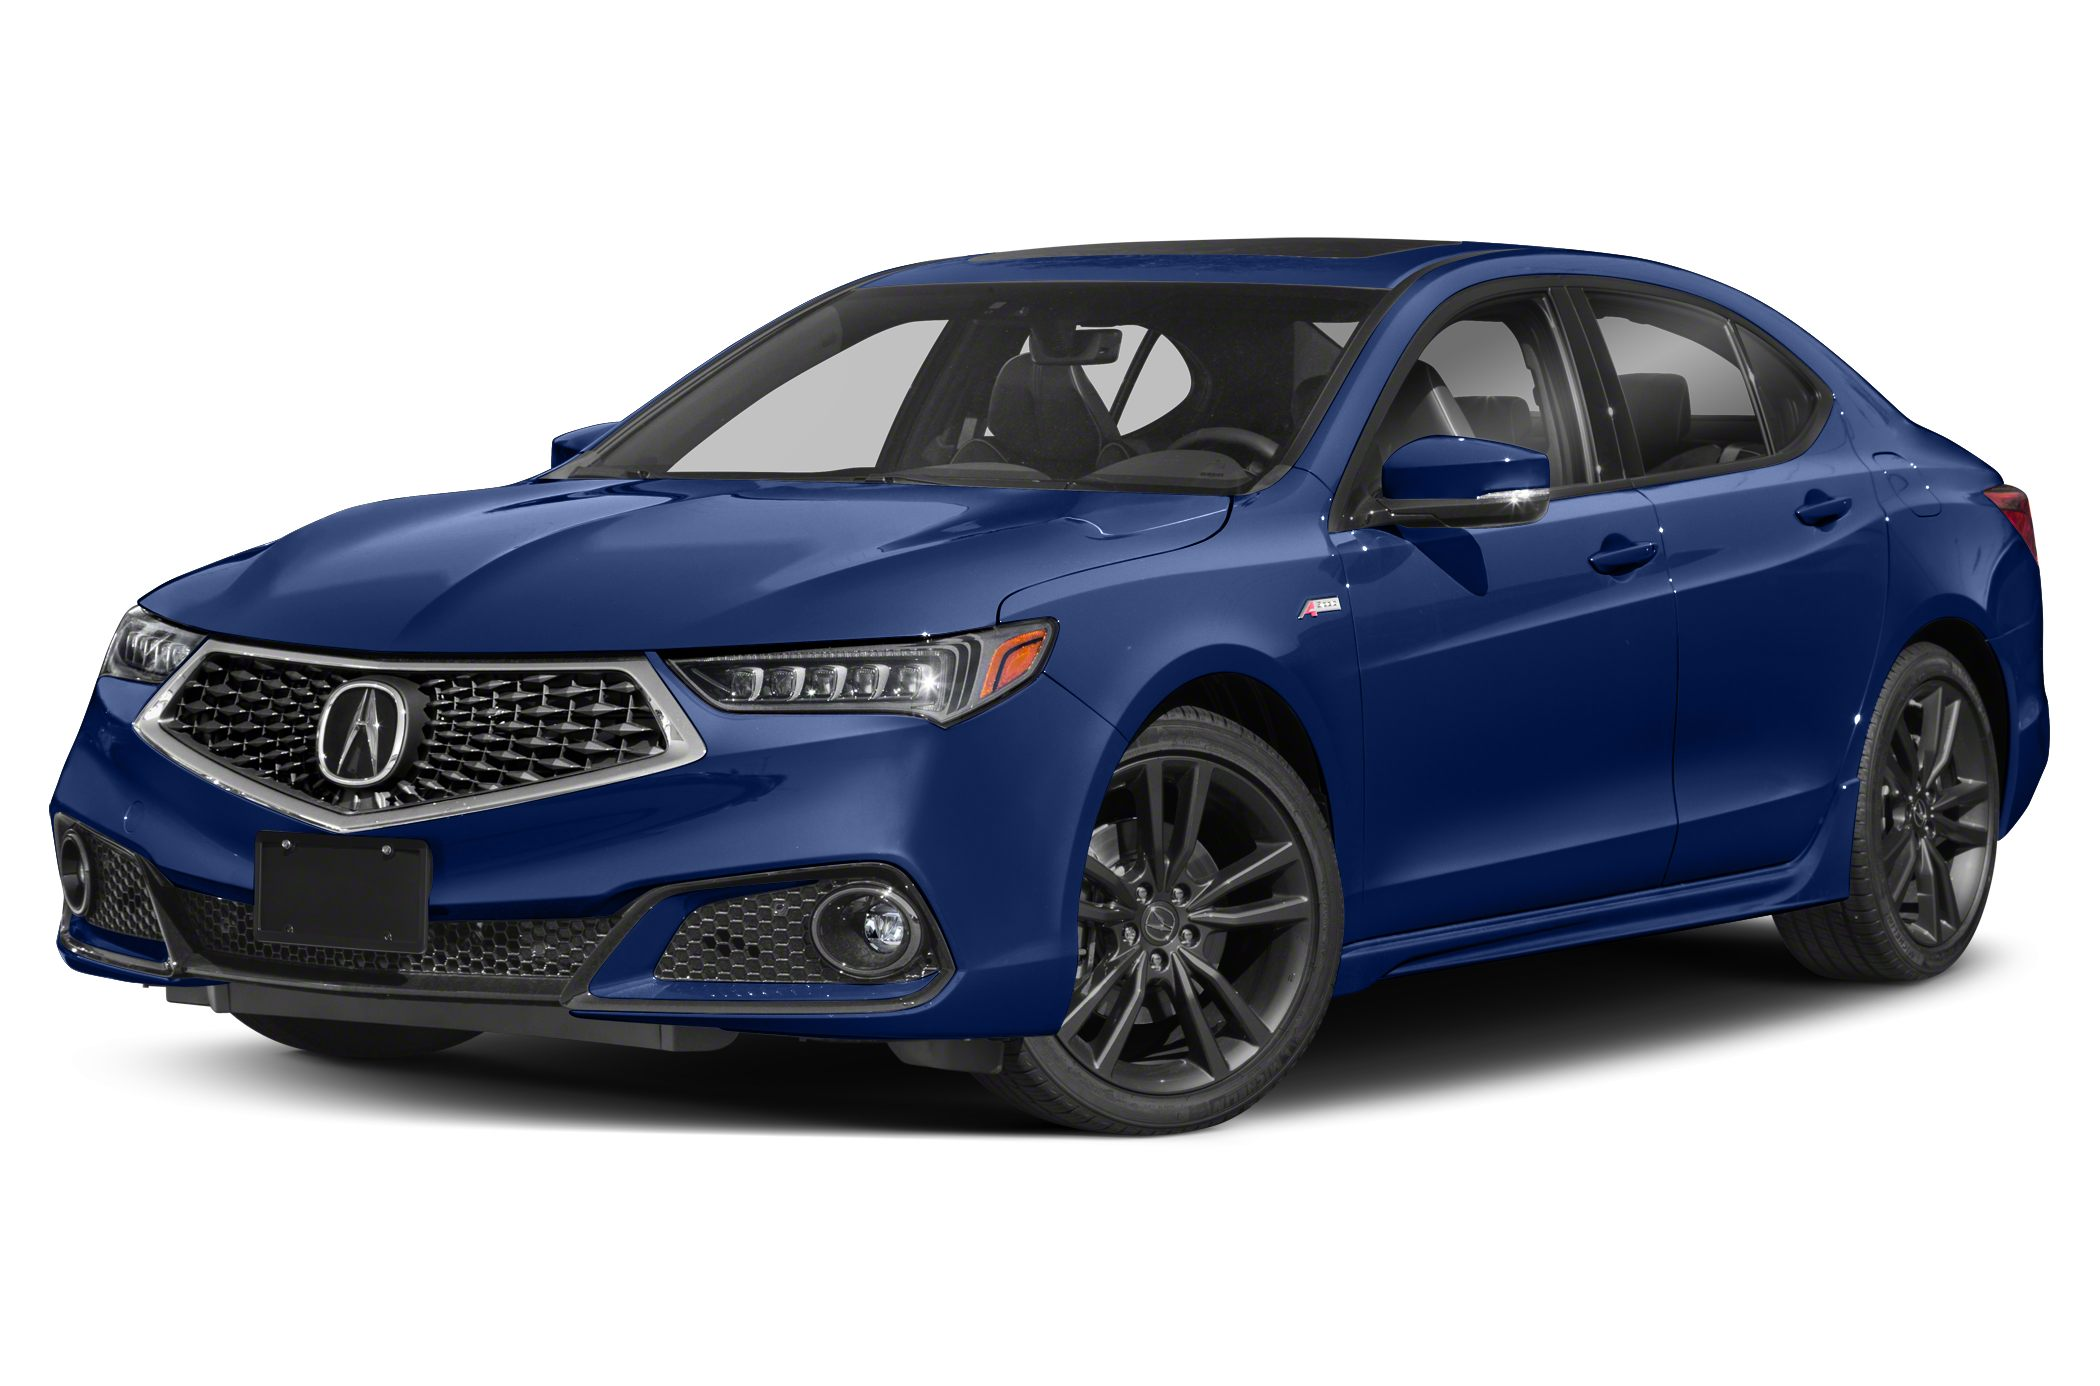 2019 Acura Tlx 2 4l Tech A Spec Pkgs 4dr Front Wheel Drive Sedan Specs And Prices